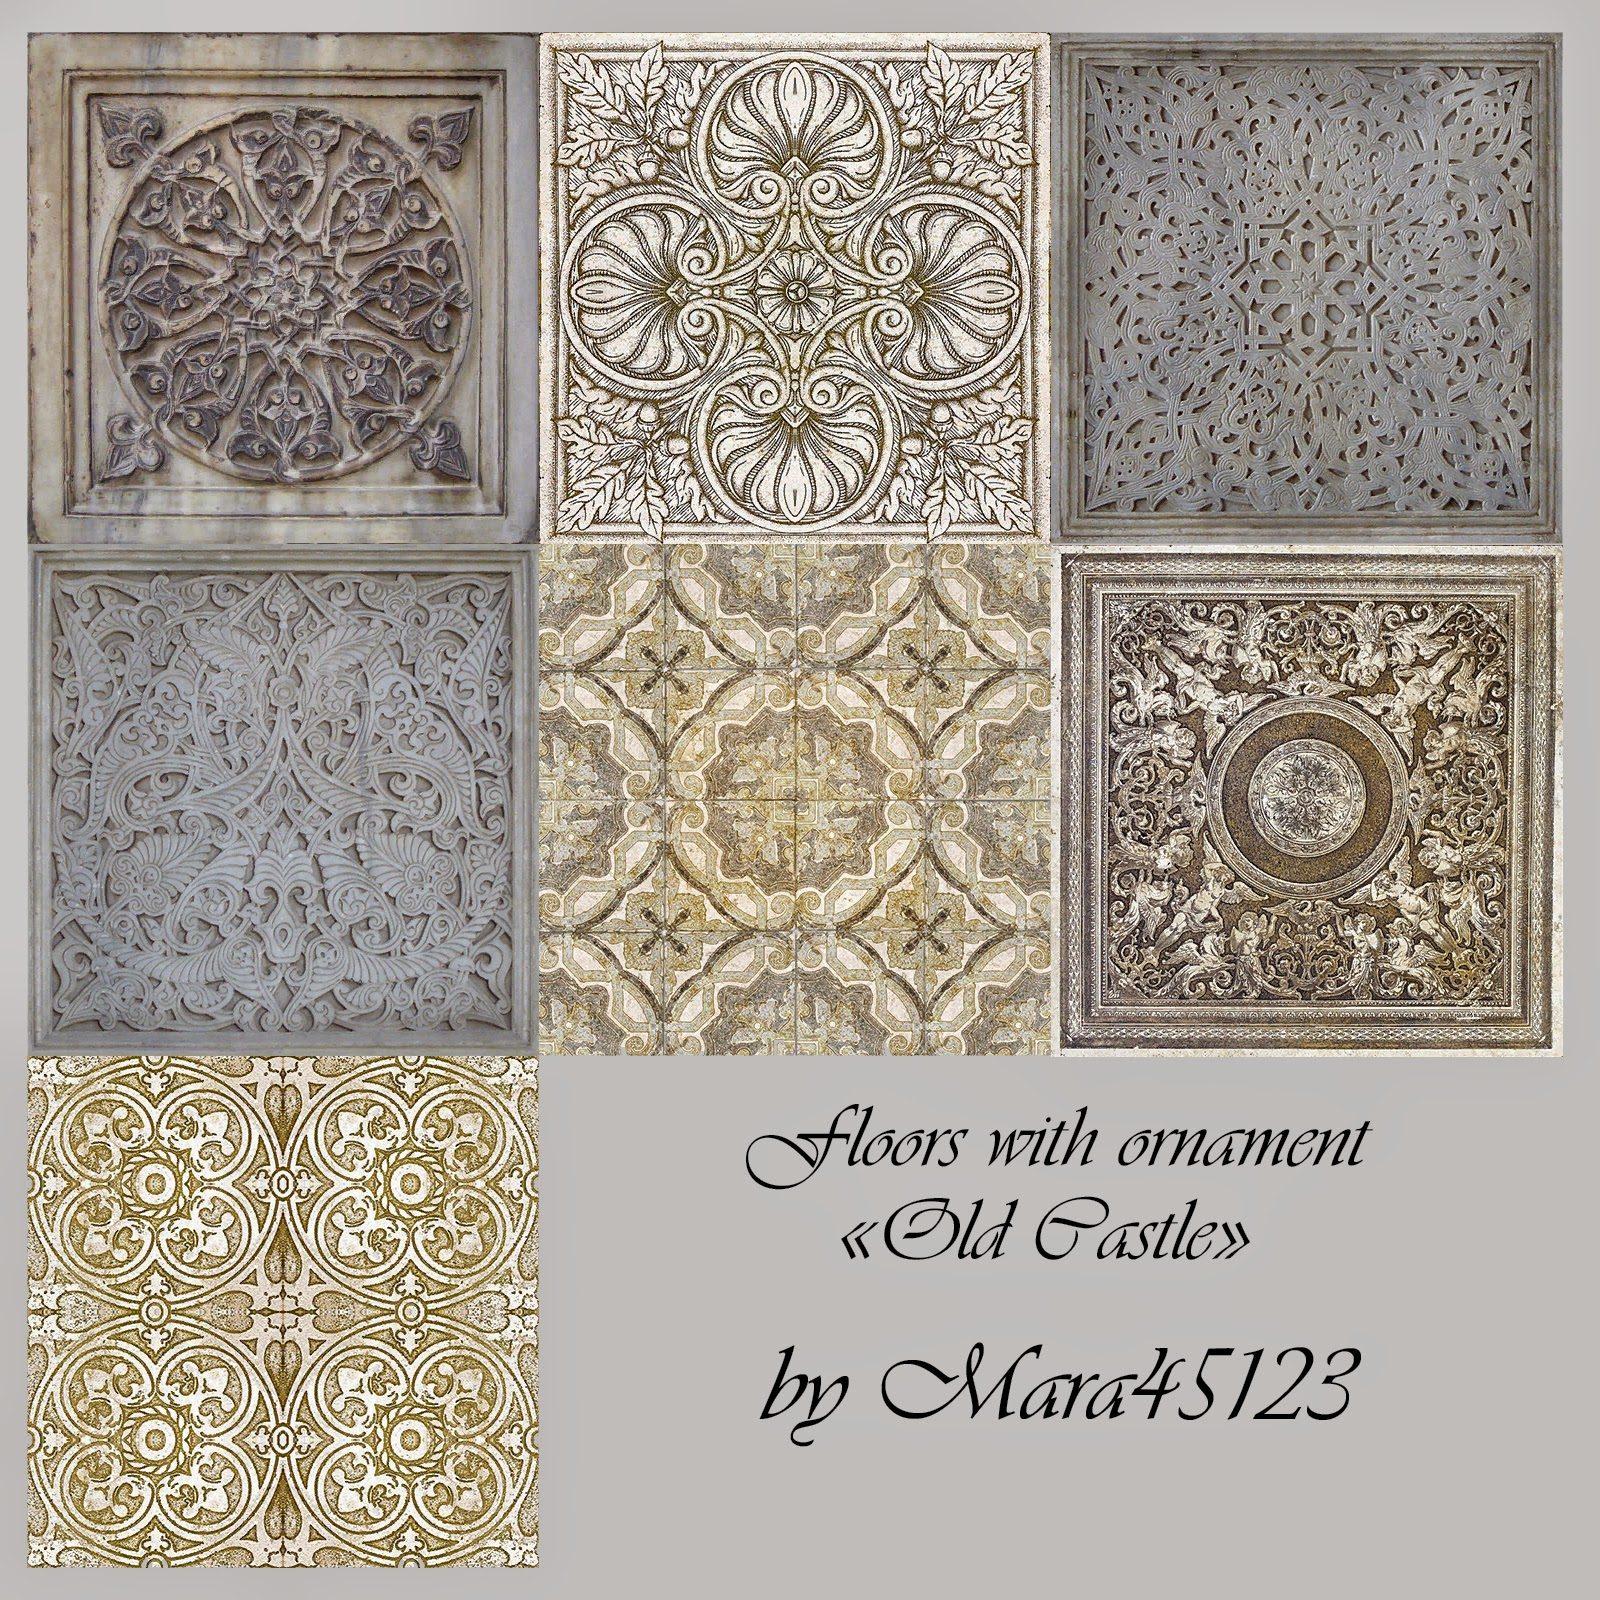 "Floors with ornament ""Old Castle"" by Mara45123"